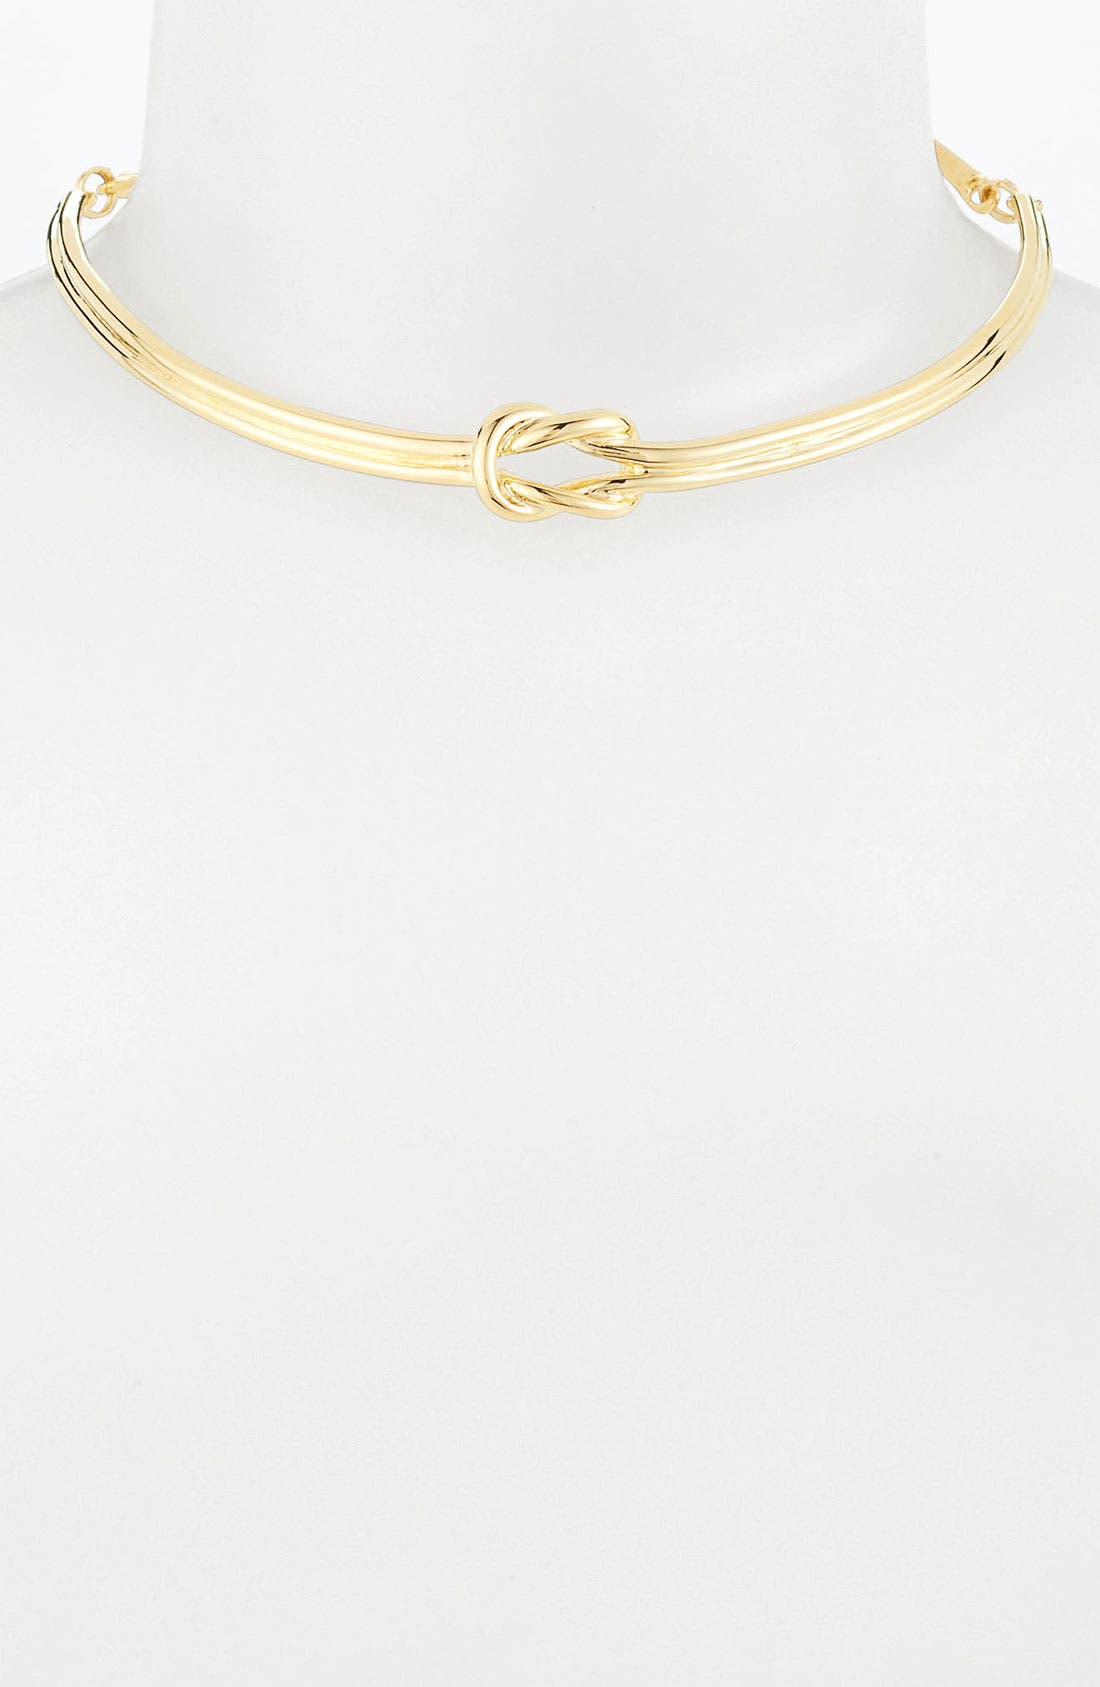 Alternate Image 1 Selected - Tory Burch 'Hercules' Collar Necklace